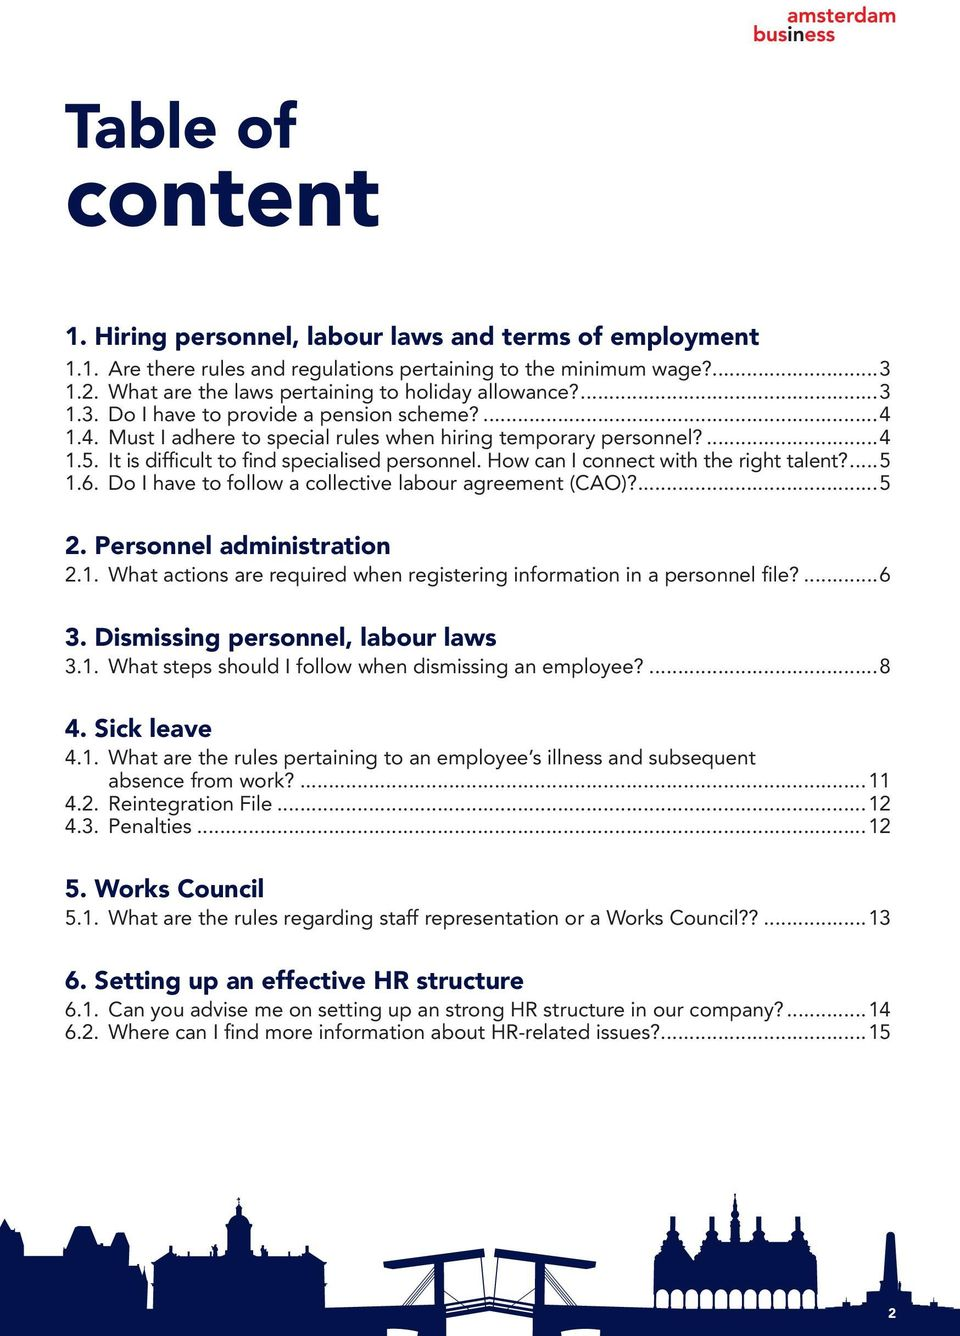 It is difficult to find specialised personnel. How can I connect with the right talent?...5 1.6. Do I have to follow a collective labour agreement (CAO)?...5 2. Personnel administration 2.1. What actions are required when registering information in a personnel file?